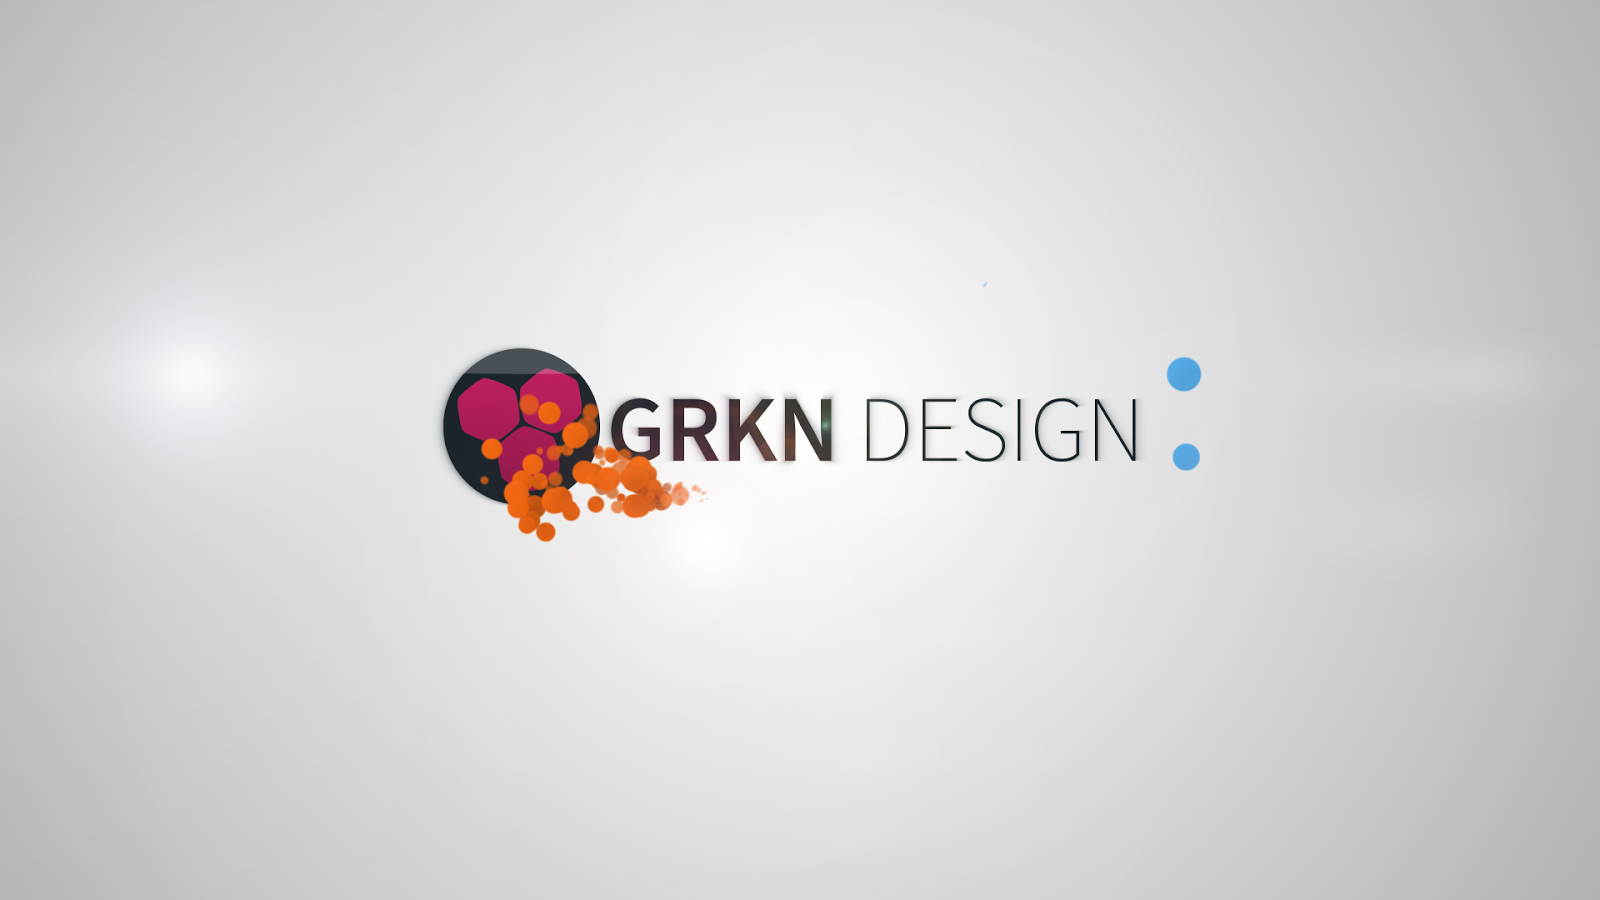 AE Grkn Design - Coming soon after effects template